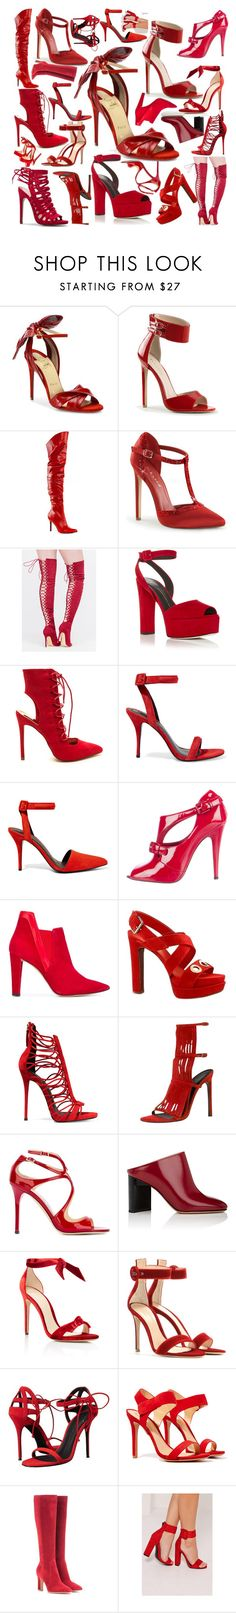 """""""Sexy Red Shoes"""" by denibrad ❤ liked on Polyvore featuring Christian Louboutin, Pleaser, Giuseppe Zanotti, Alexander Wang, Casadei, Jean-Michel Cazabat, Louis Vuitton, Gucci, Jimmy Choo and Maison Margiela"""